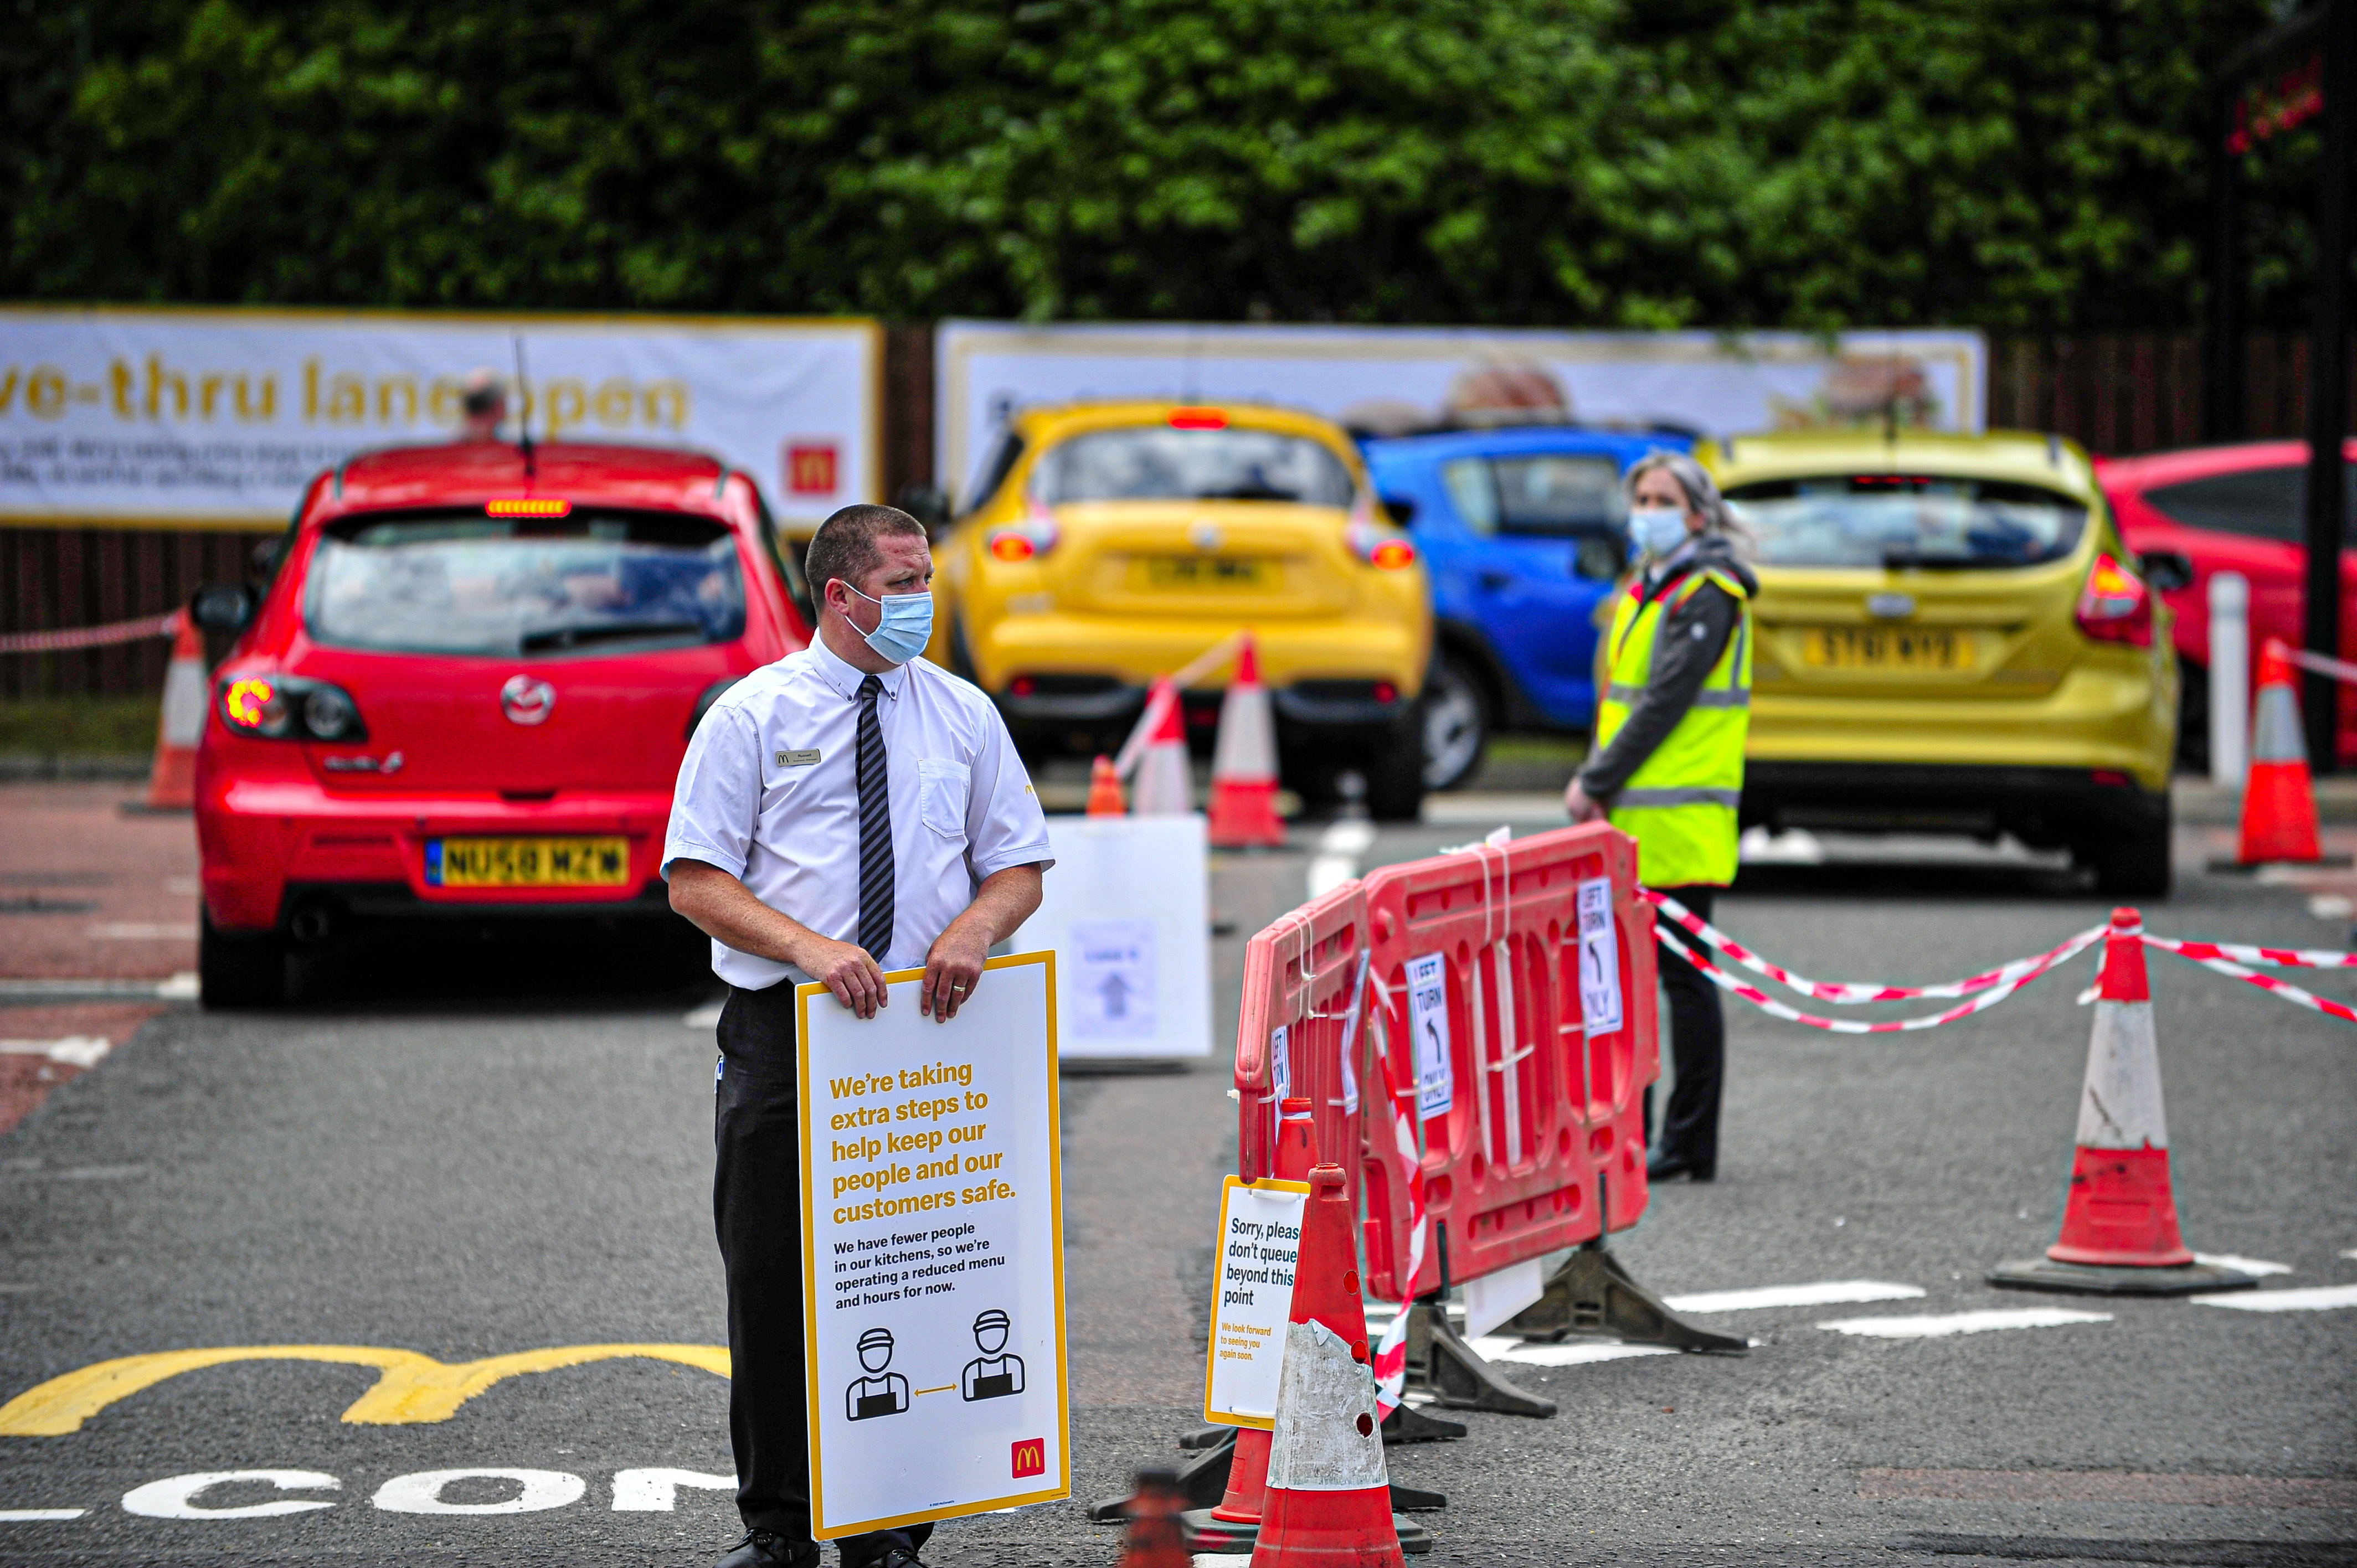 Manager of the branch holding a sign at the car parking during the reopening. McDonald's reopens its Alloa branch on Clackmannan Road as Drive-Thru only and implementing a one-way system to keep the flow of traffic going. (Photo by Stewart Kirby / SOPA Images/Sipa USA)